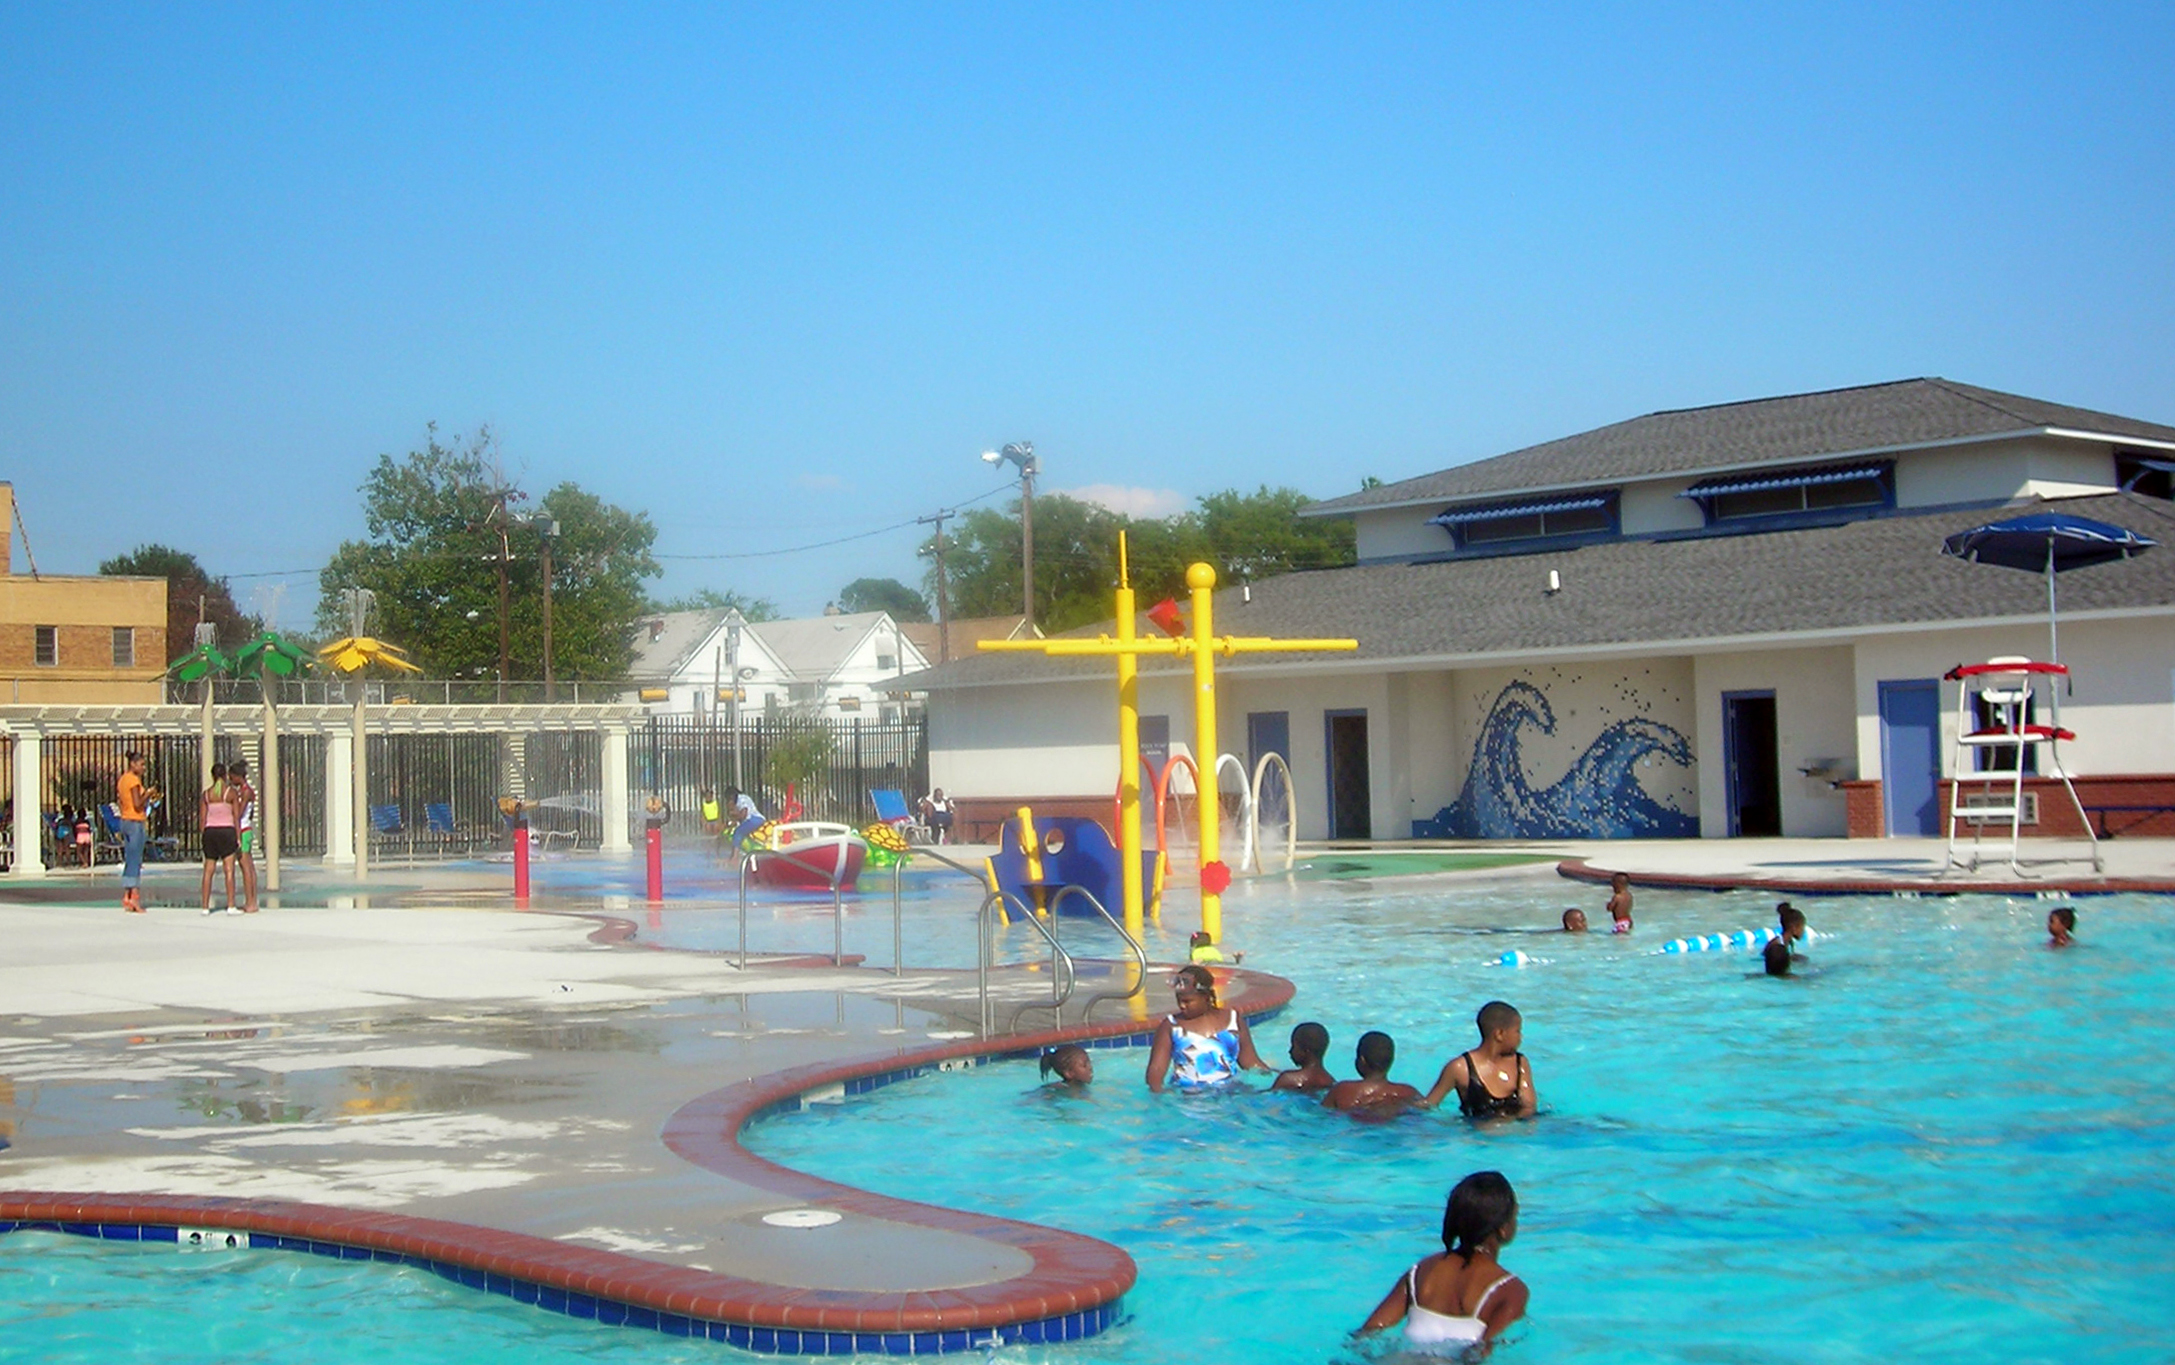 Doris Miller Pool Building